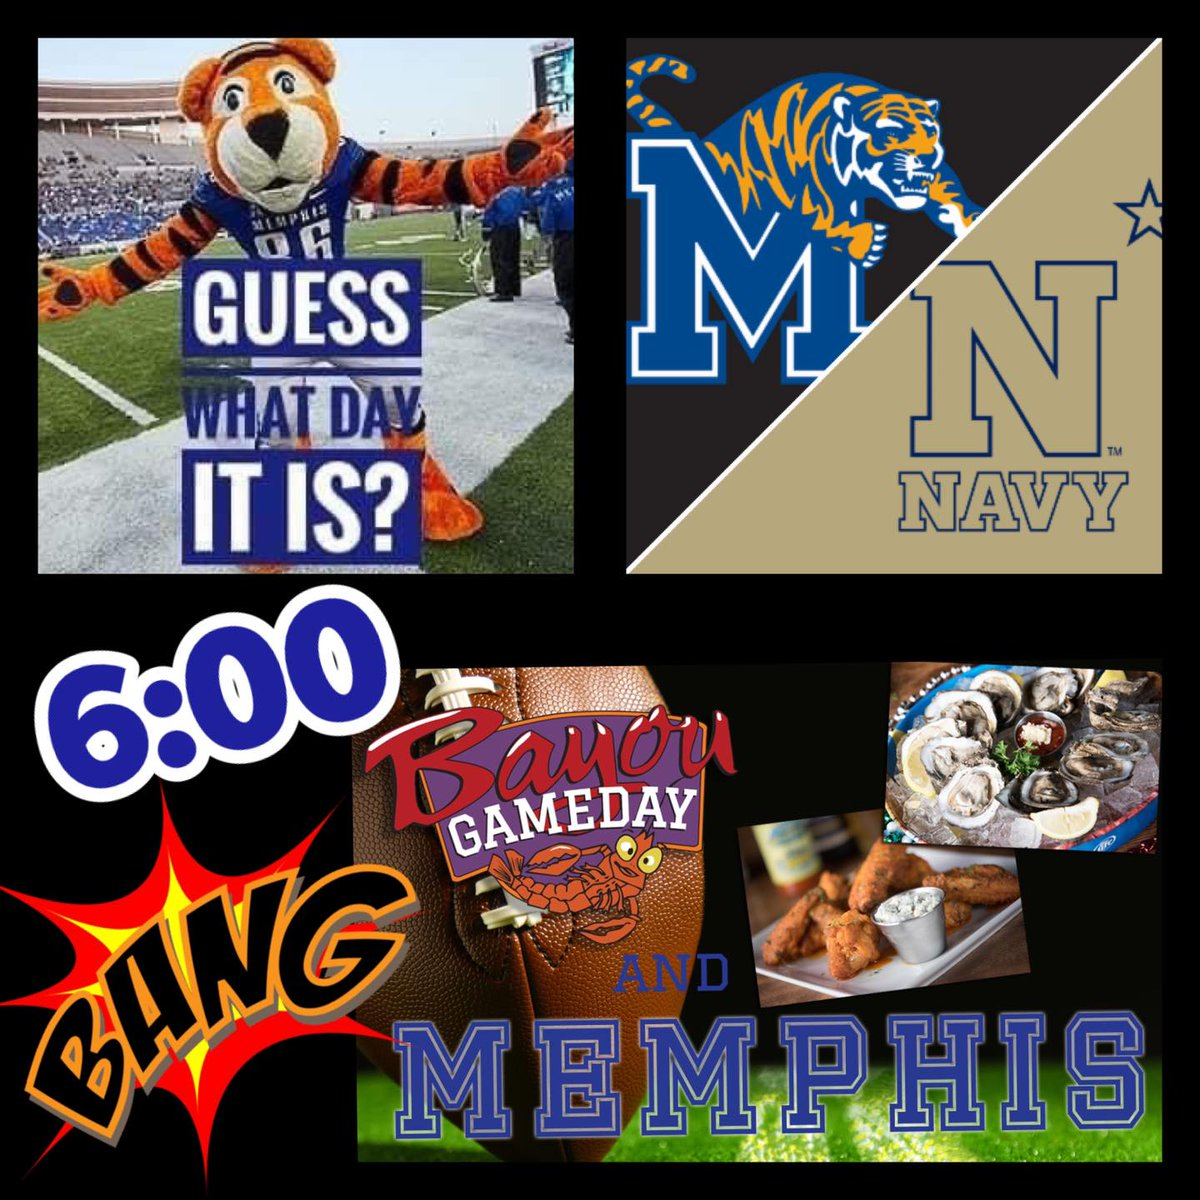 Its always game day at Bayou Bar and Grill! 🏈 Head over to catch the Memphis Tigers vs Navy game today at 6 p.m. 🐯 #GoTigers #ilovememphis